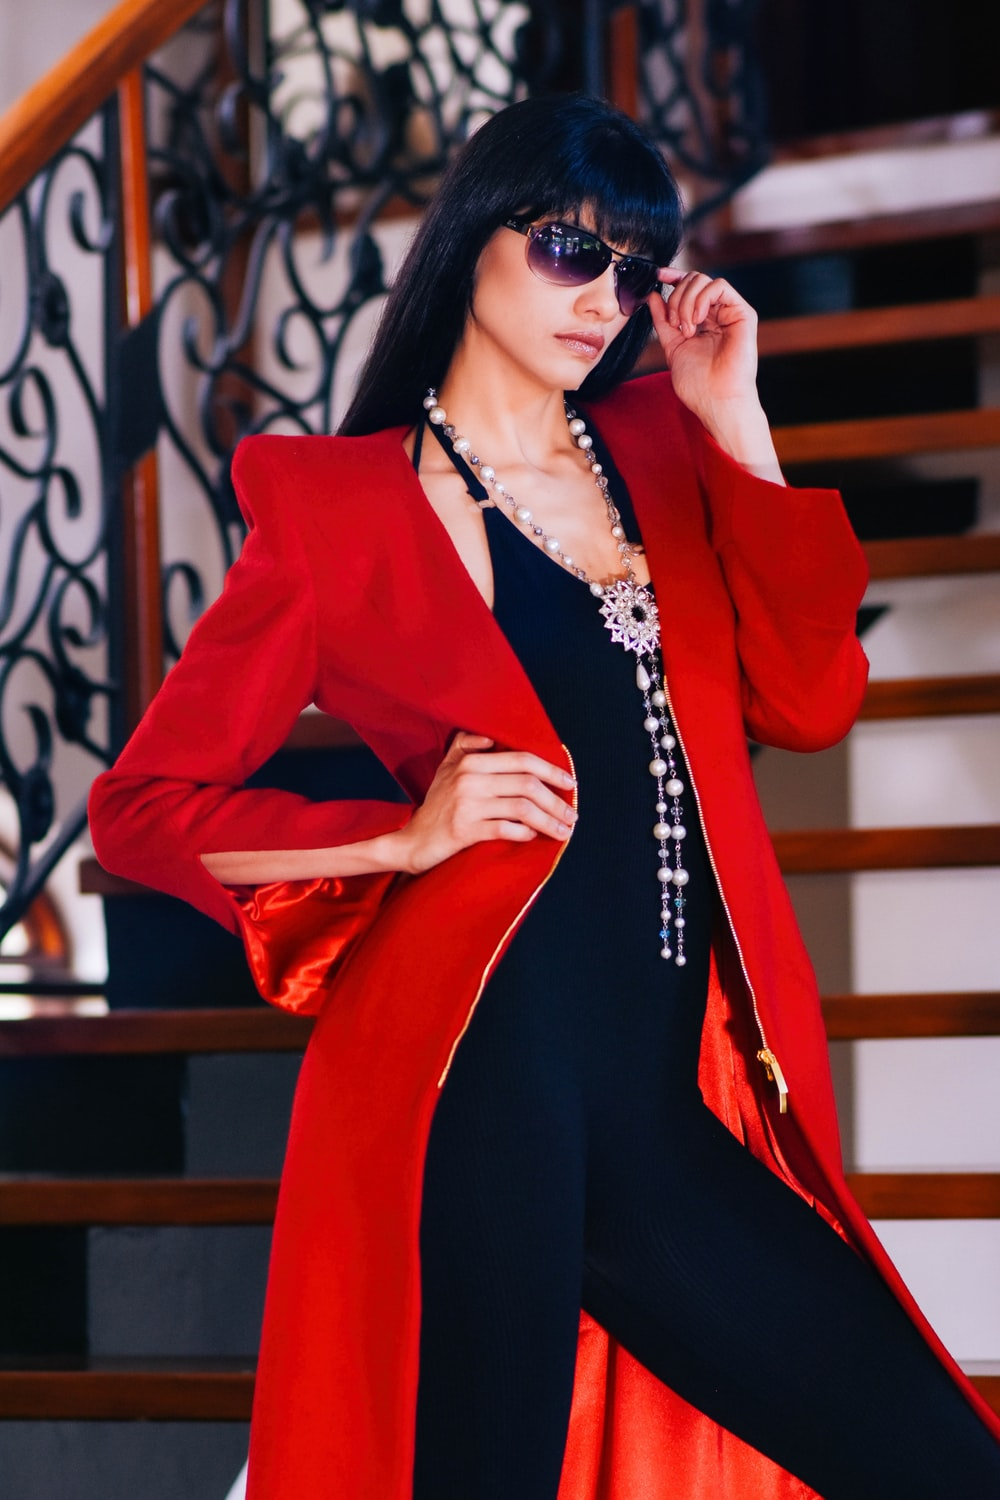 woman wearing red coat and sunglasses standing with right arm akimbo